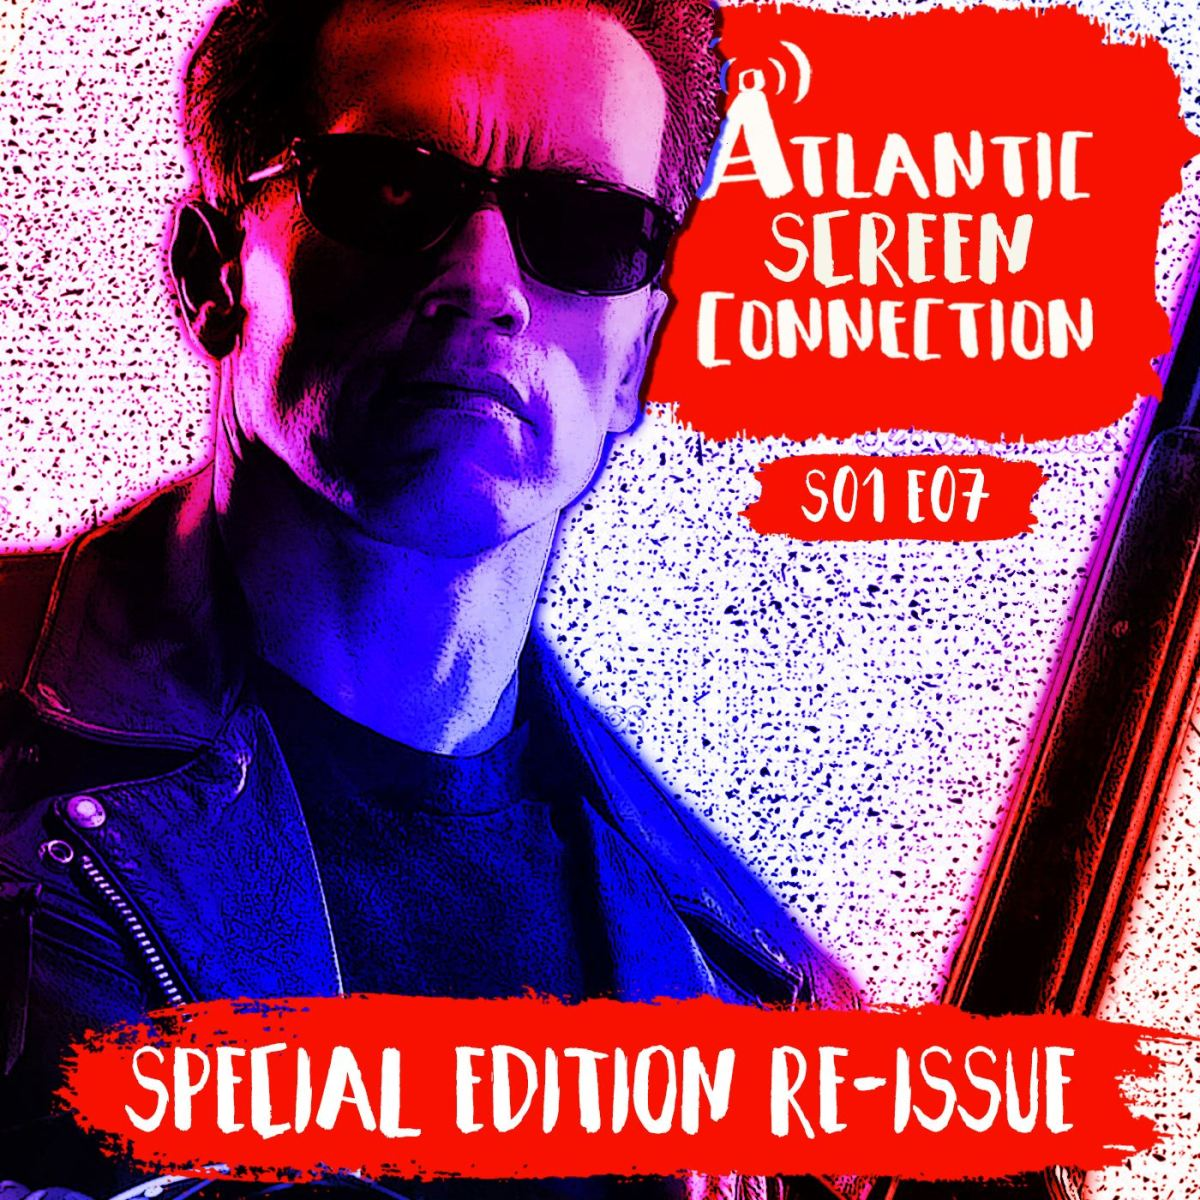 PODCAST: TERMINATOR 2 JUDGMENT DAY SPECIAL EDITION RE-ISSUE